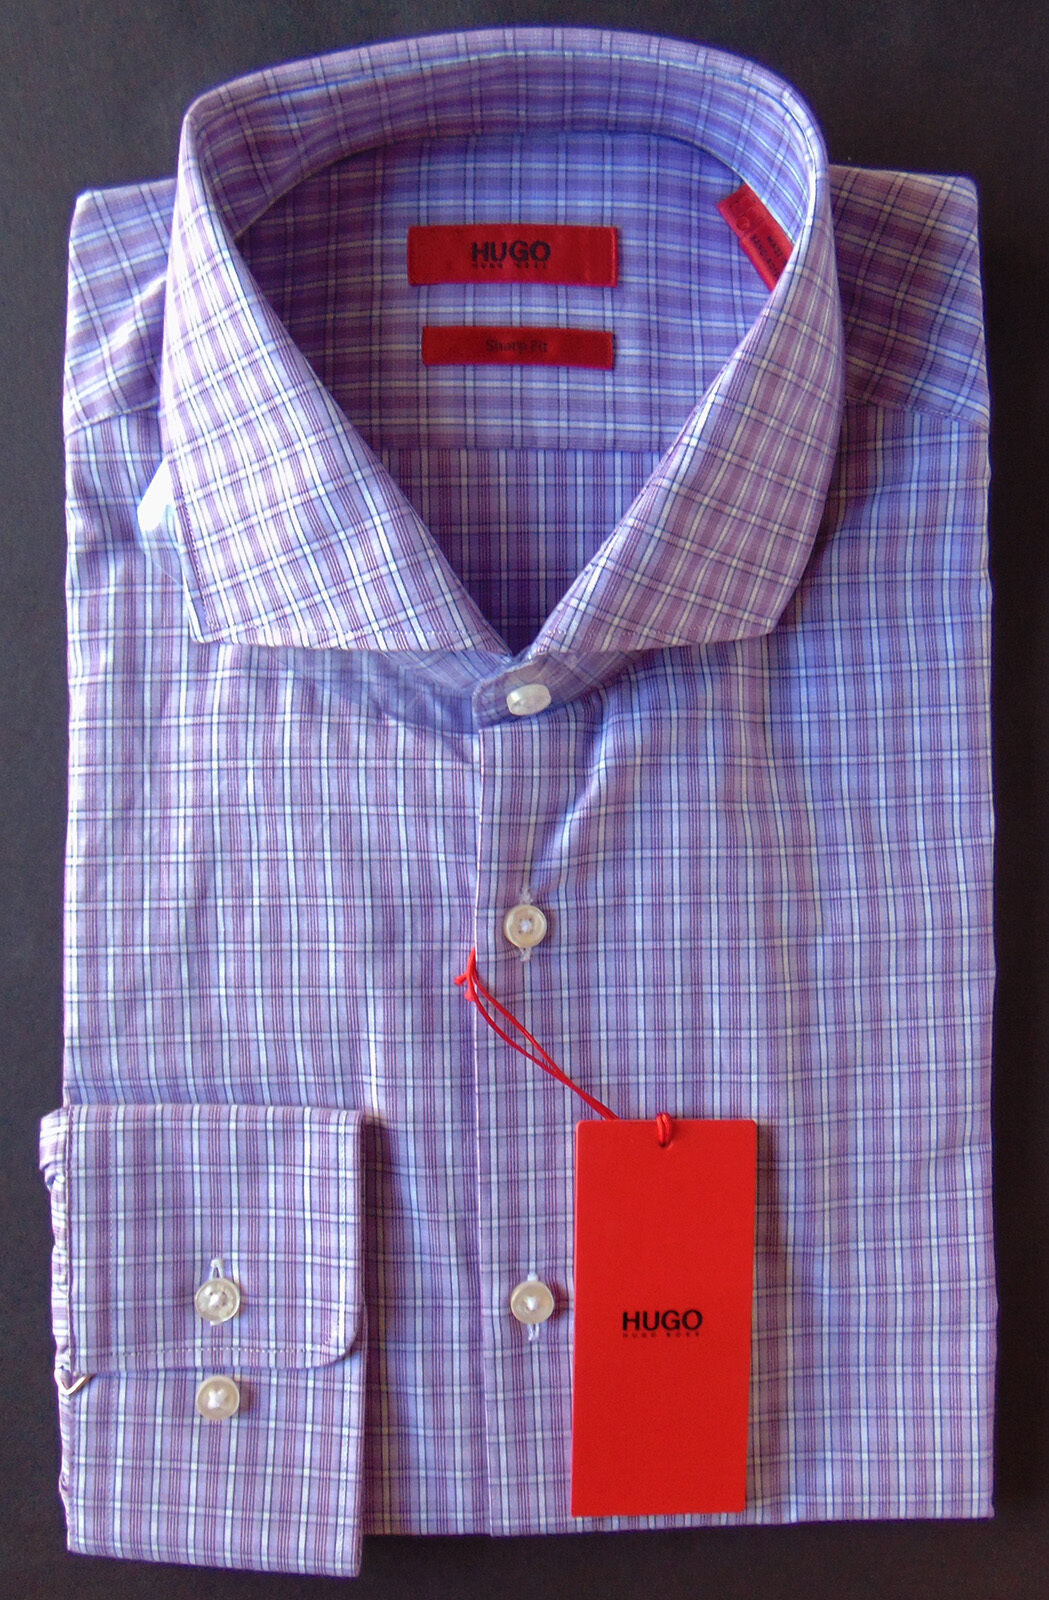 Men's HUGO BOSS Red Label Lavender Plaid Dress Shirt 15 1 2 32 33 Sharp Fit NWT